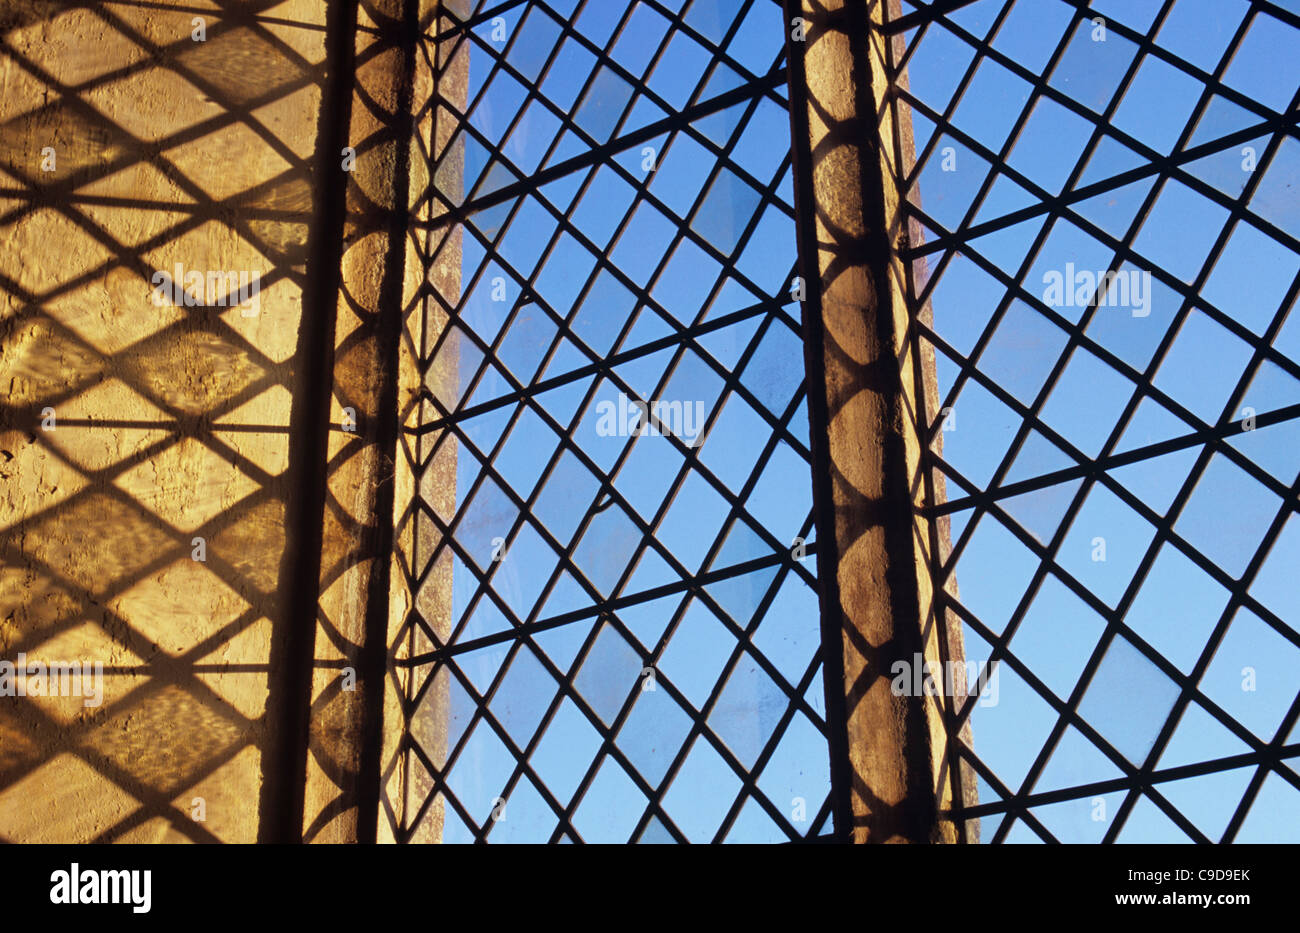 United Kingdom, Norfolk, Detail of diamond-leaded window set in carved sandstone and casting shadows of flawed handmade - Stock Image